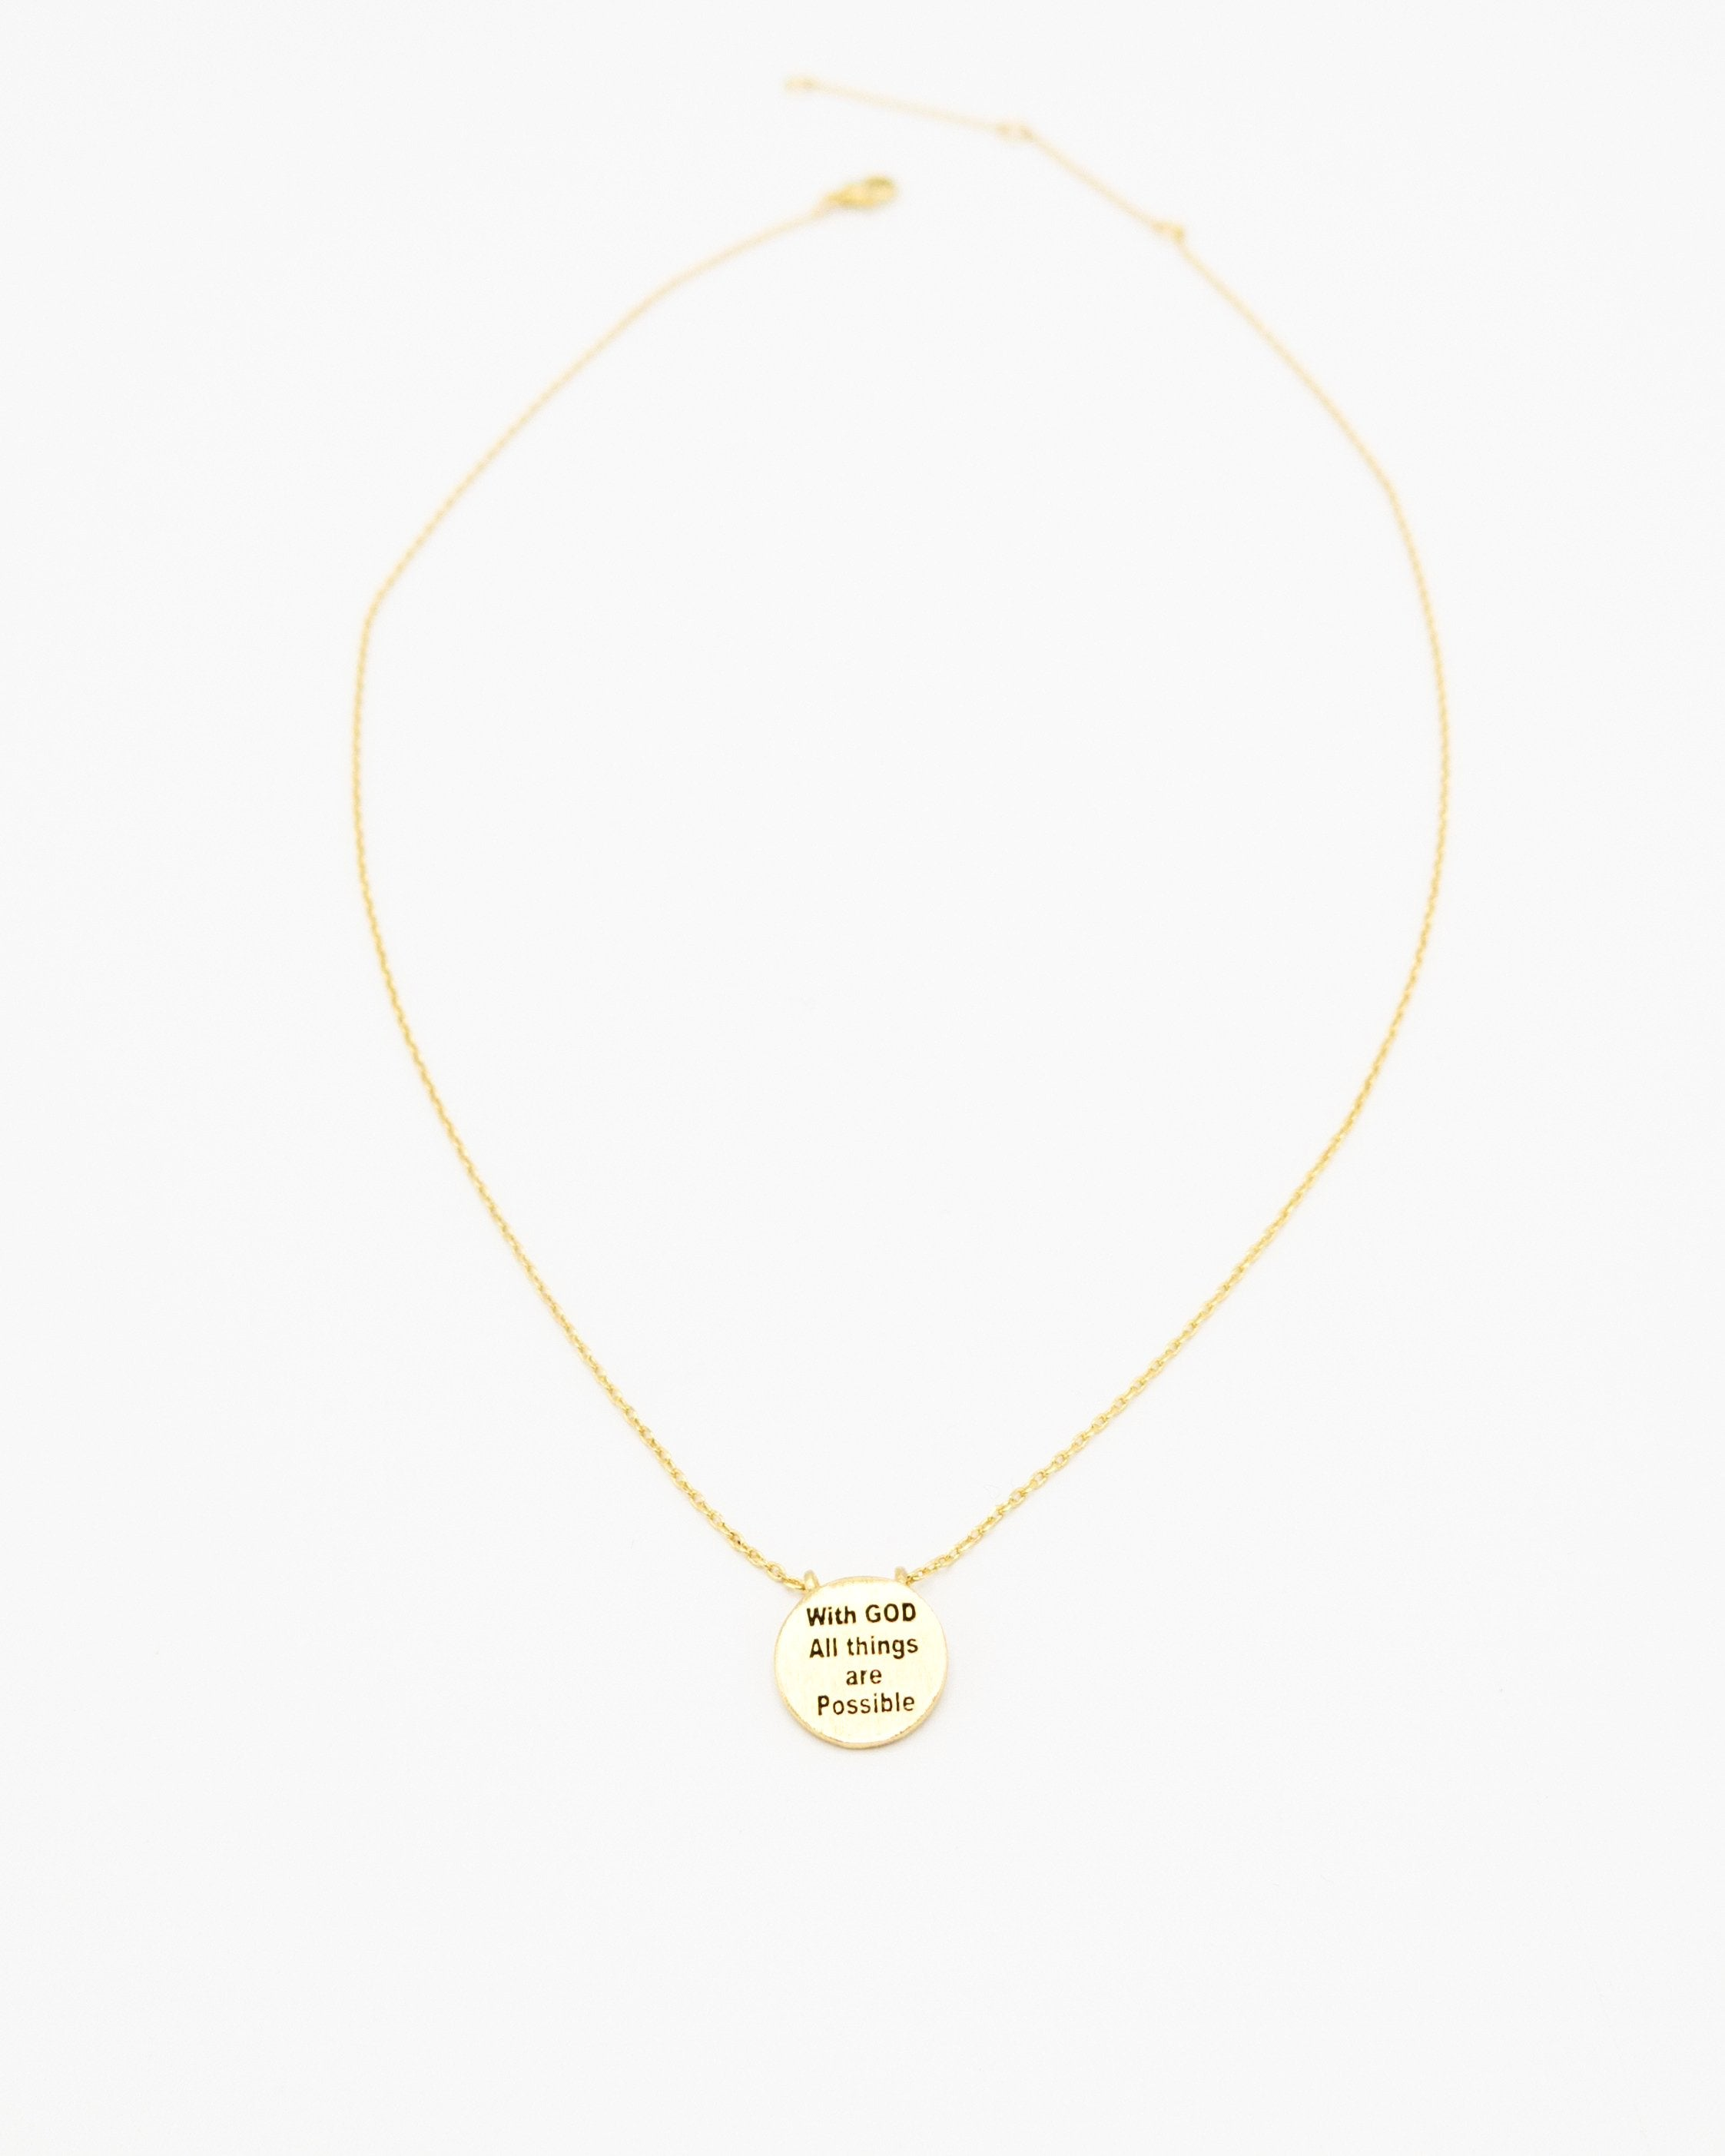 With God All Things Are Possible Inspirational Round Necklace in gold